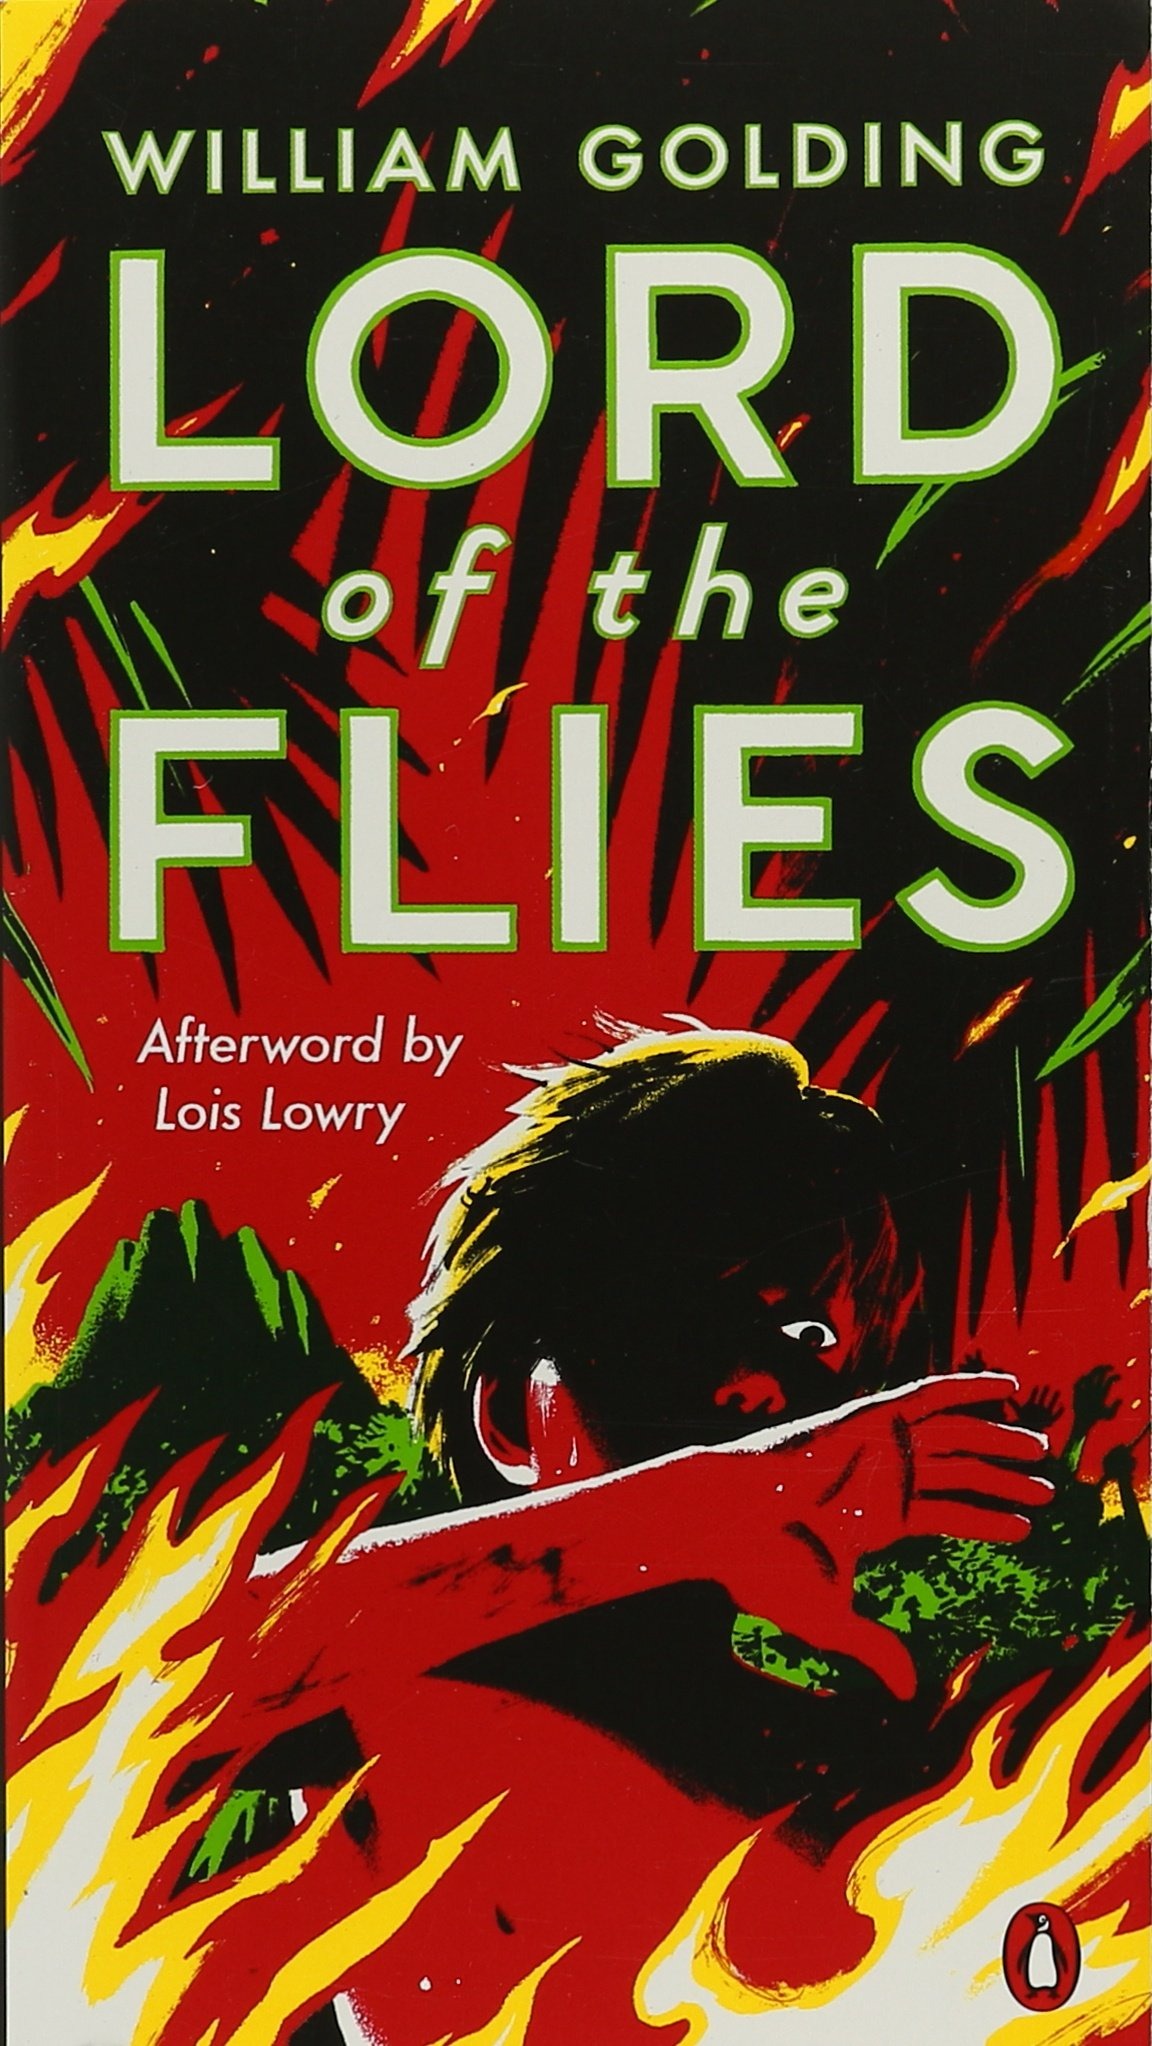 lord of the flies william golding e l epstein  lord of the flies william golding e l epstein 9780399501487 com books